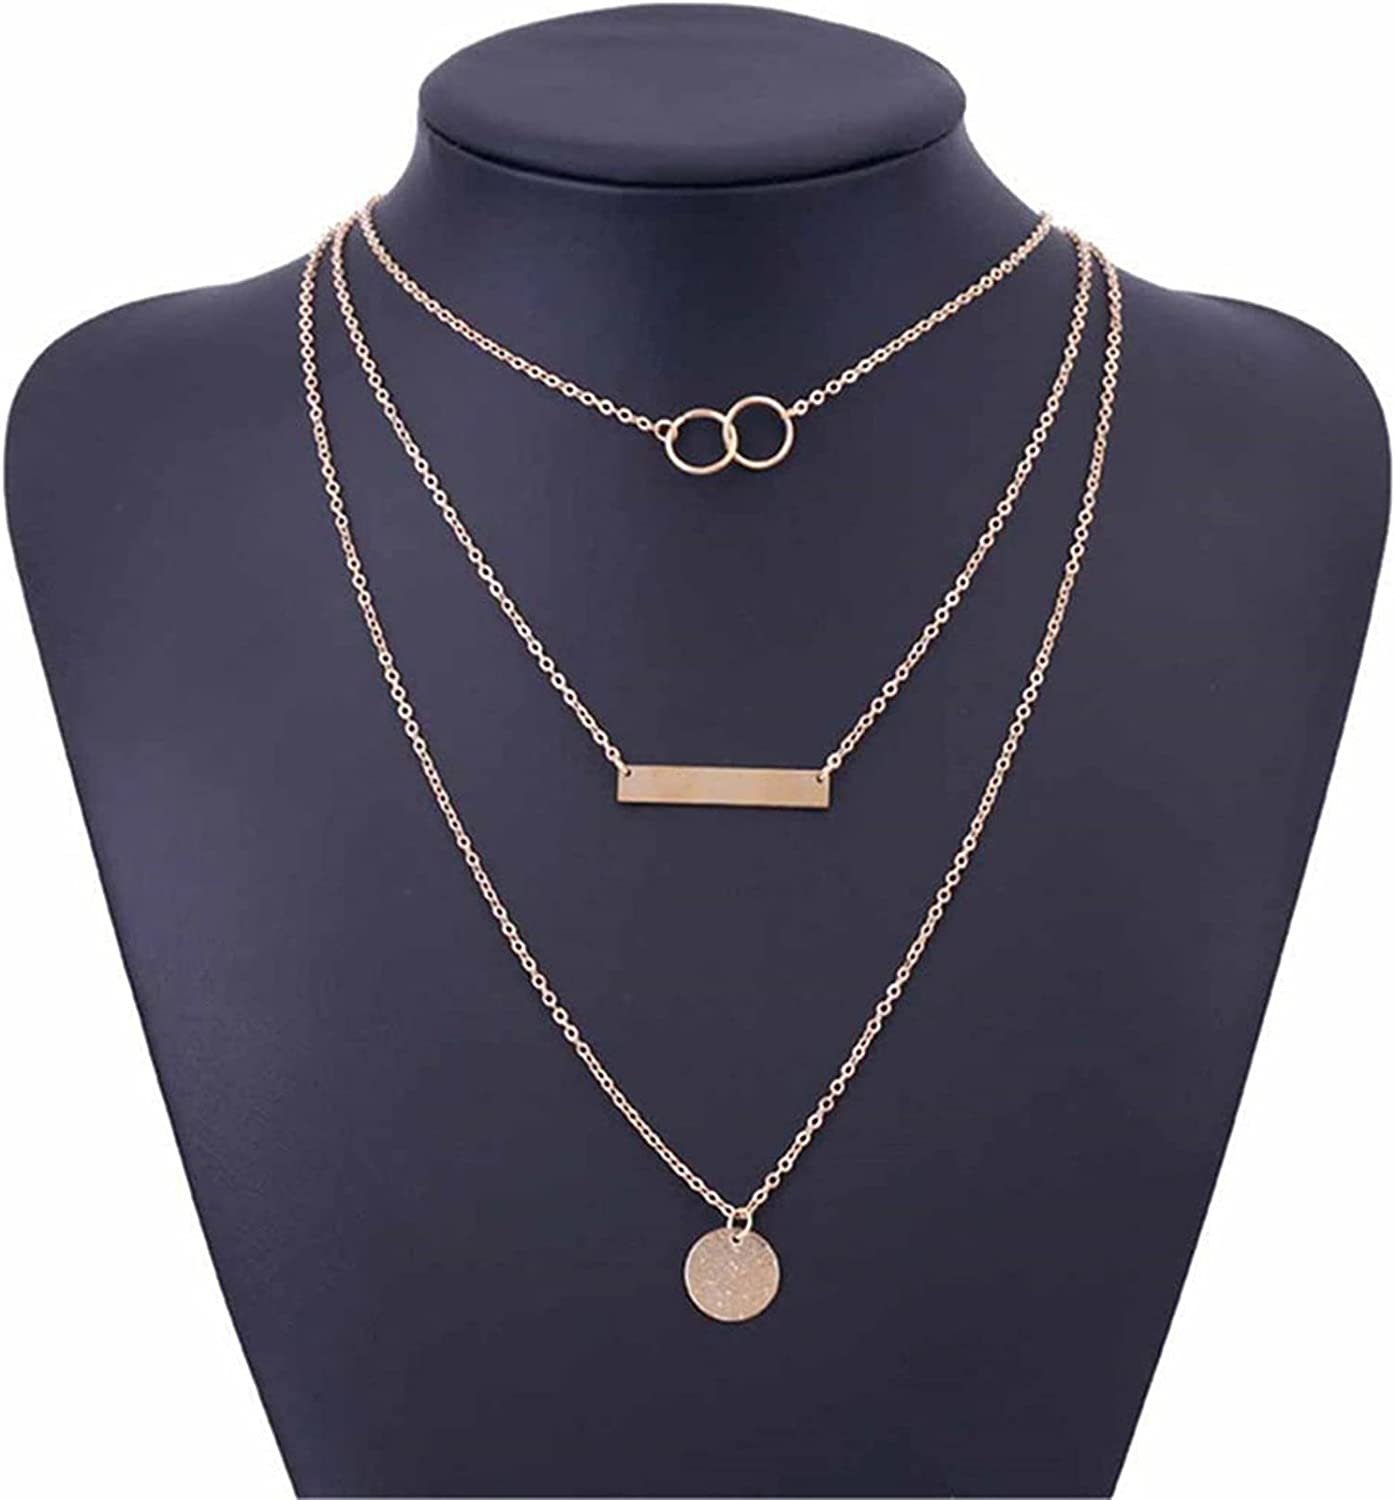 LoveAloe Boho Sequins Layered Necklace Circle Disc Pendant Necklaces Bar Chain Jewellery for Women Girls